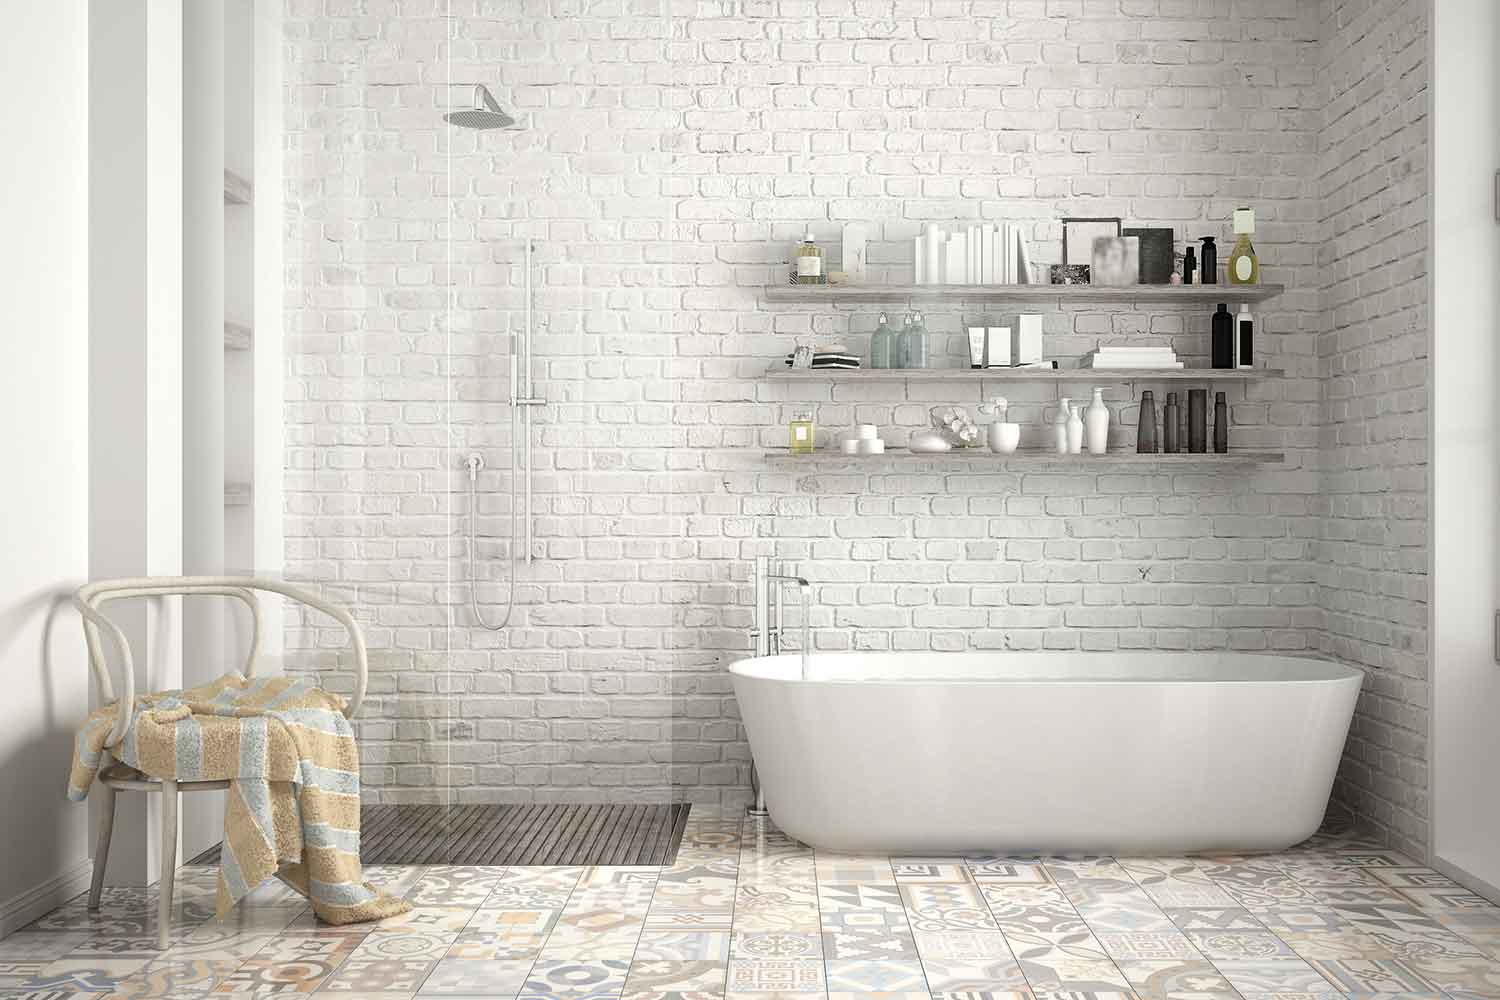 Budget bathroom renovations: How to keep your costs down | Better ...